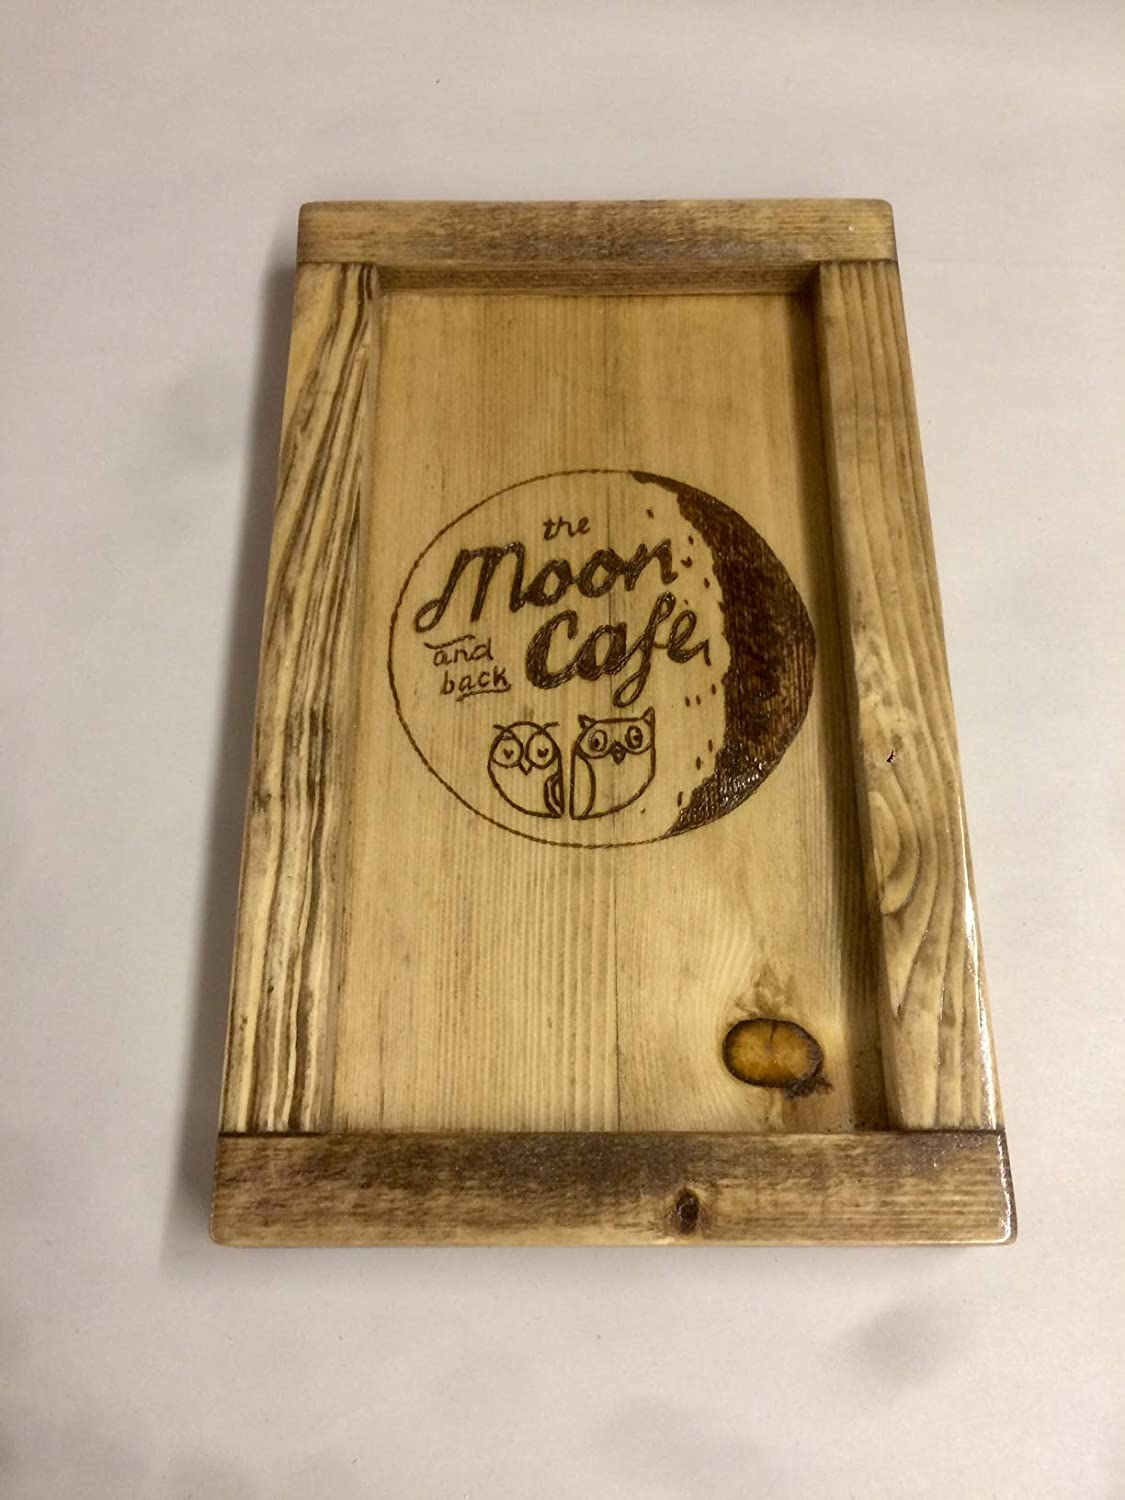 Restaurant guest check tray, Personalized wood guest check presenter, small rustic tray